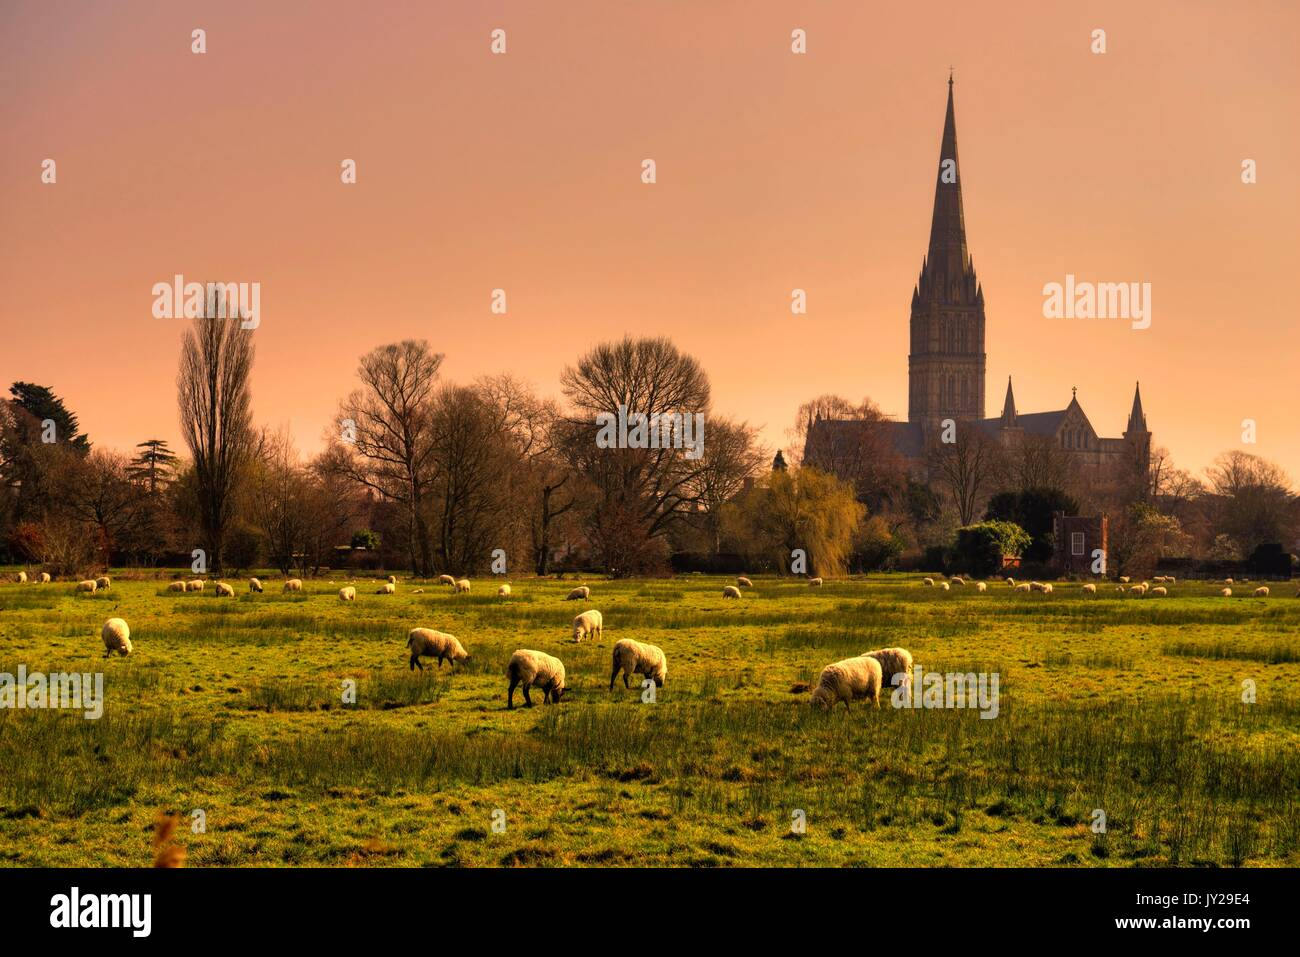 Salisbury Cathedral, seen from Harnham meadows, (processed as an HDR image). Stock Photo